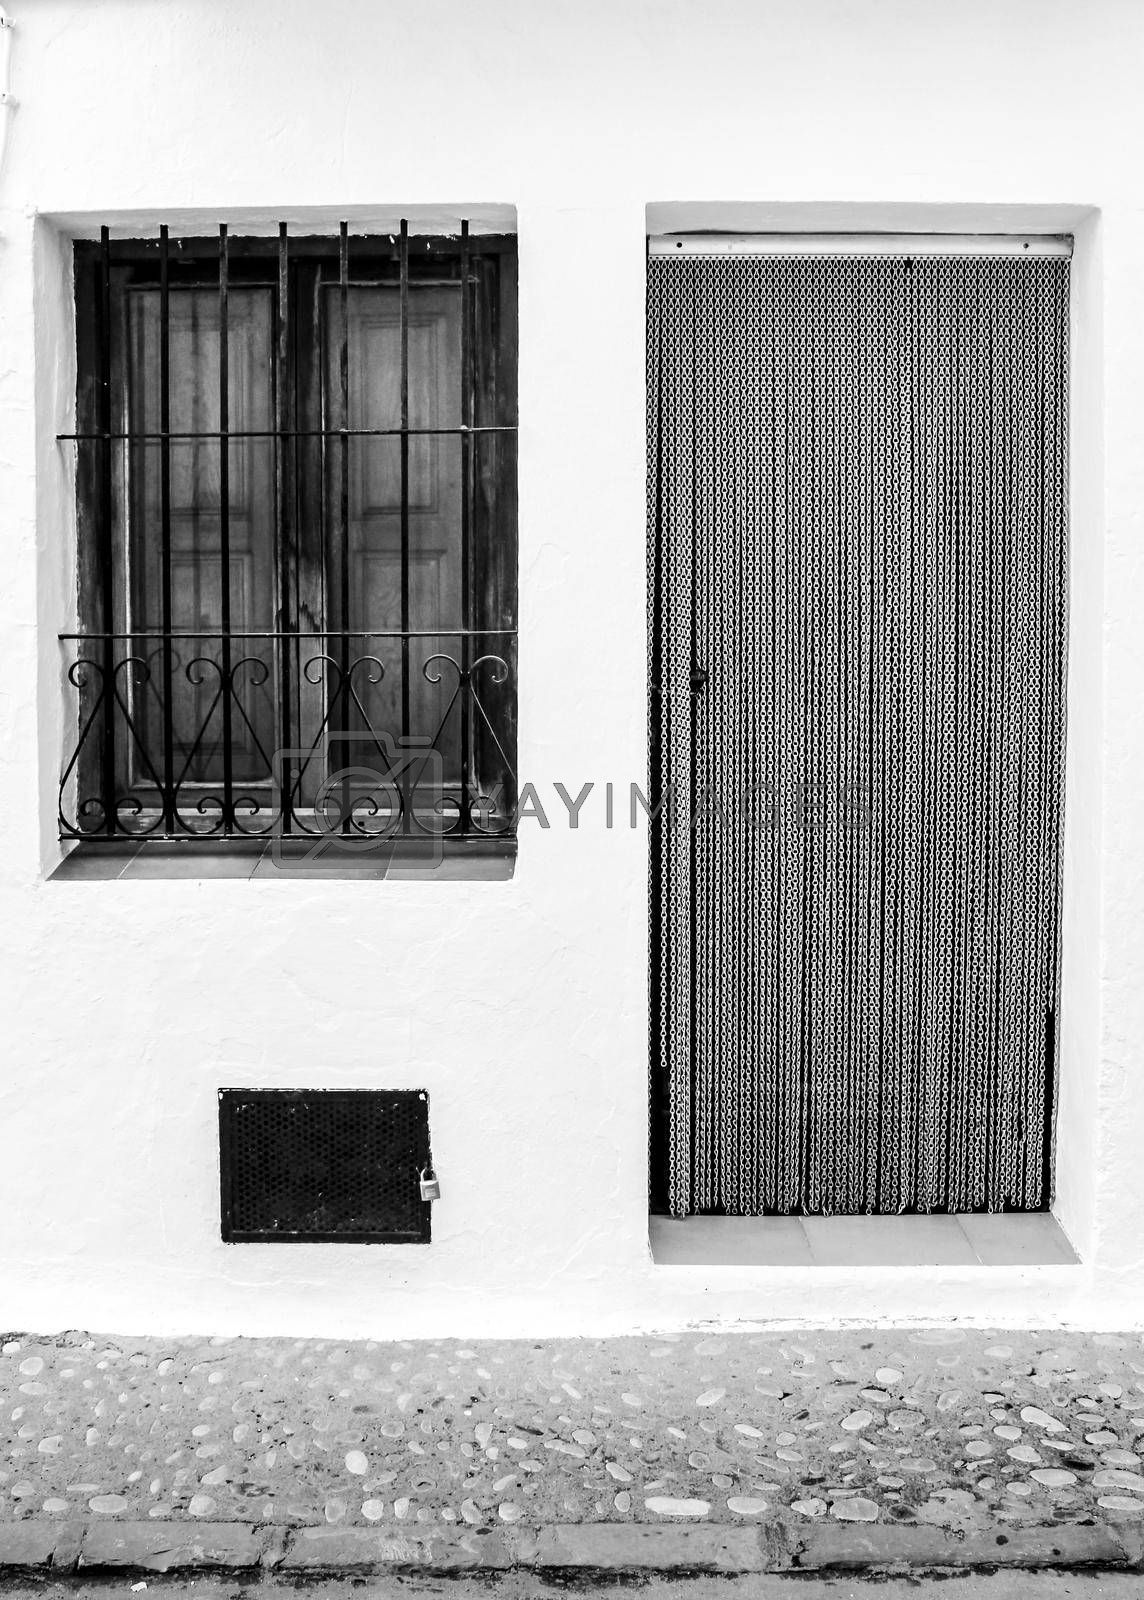 Striped metal curtain on door and window with metal grill of a village house in Altea, Alicante, Spain